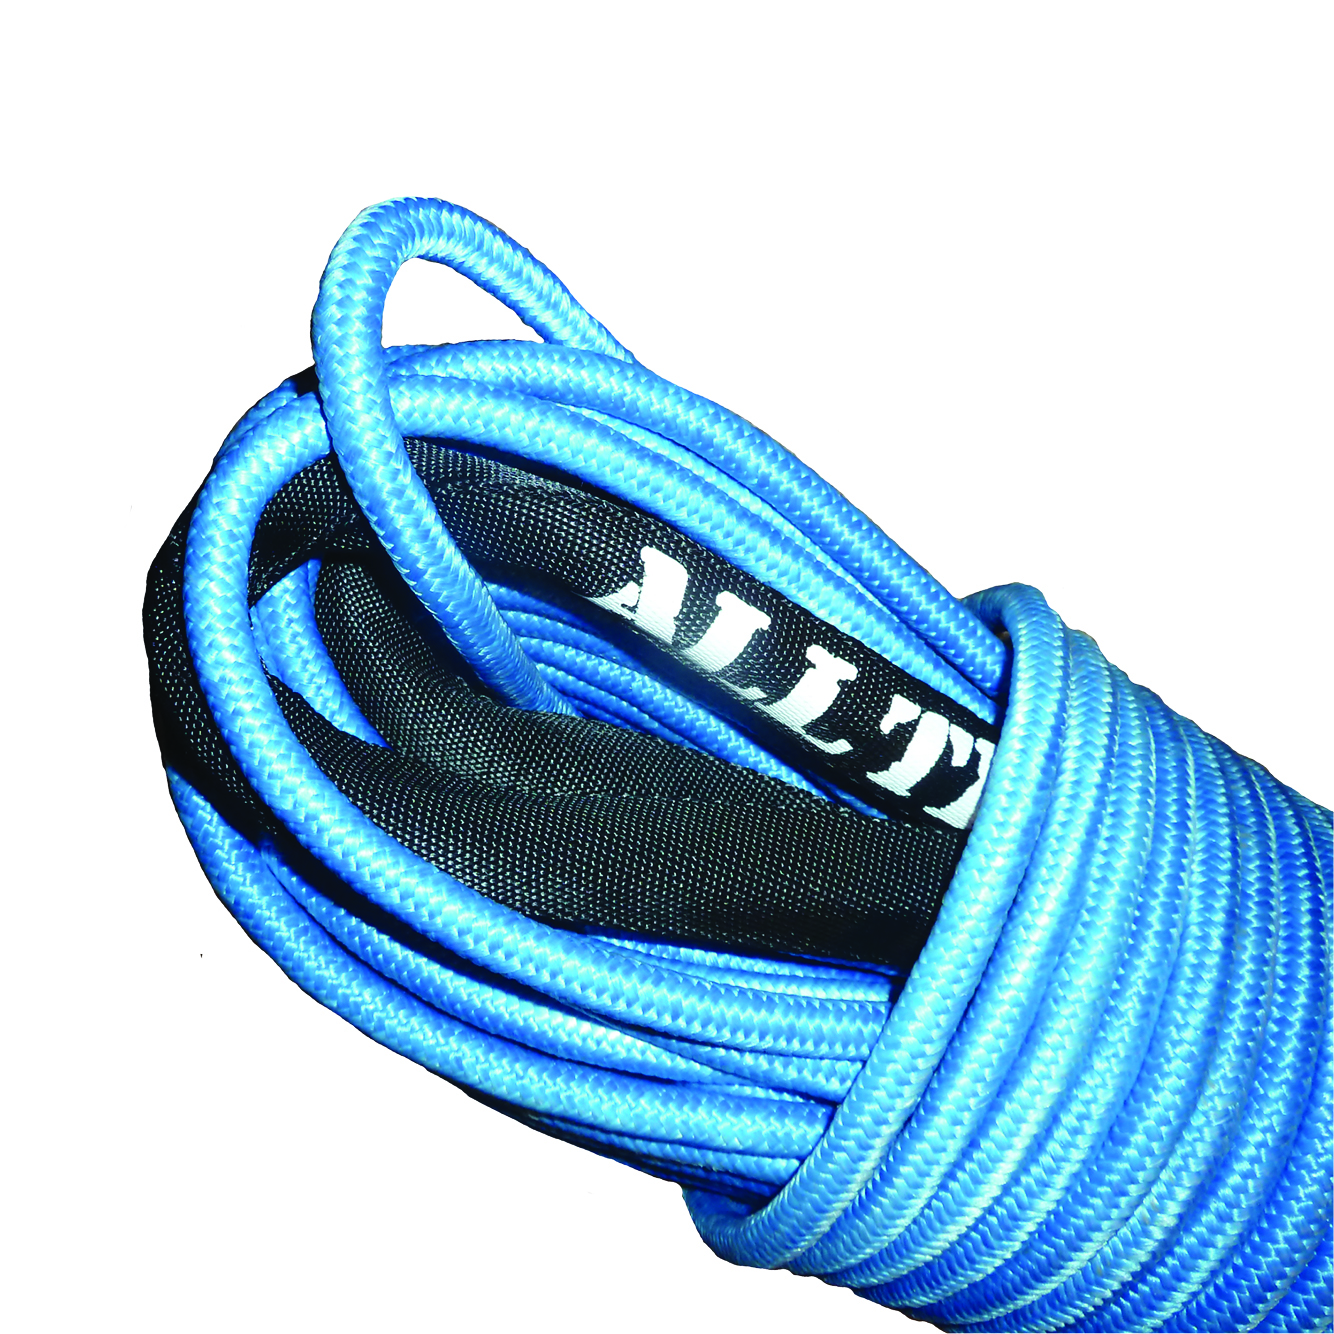 Alltracks Synthetic rope 12mm blue double braided